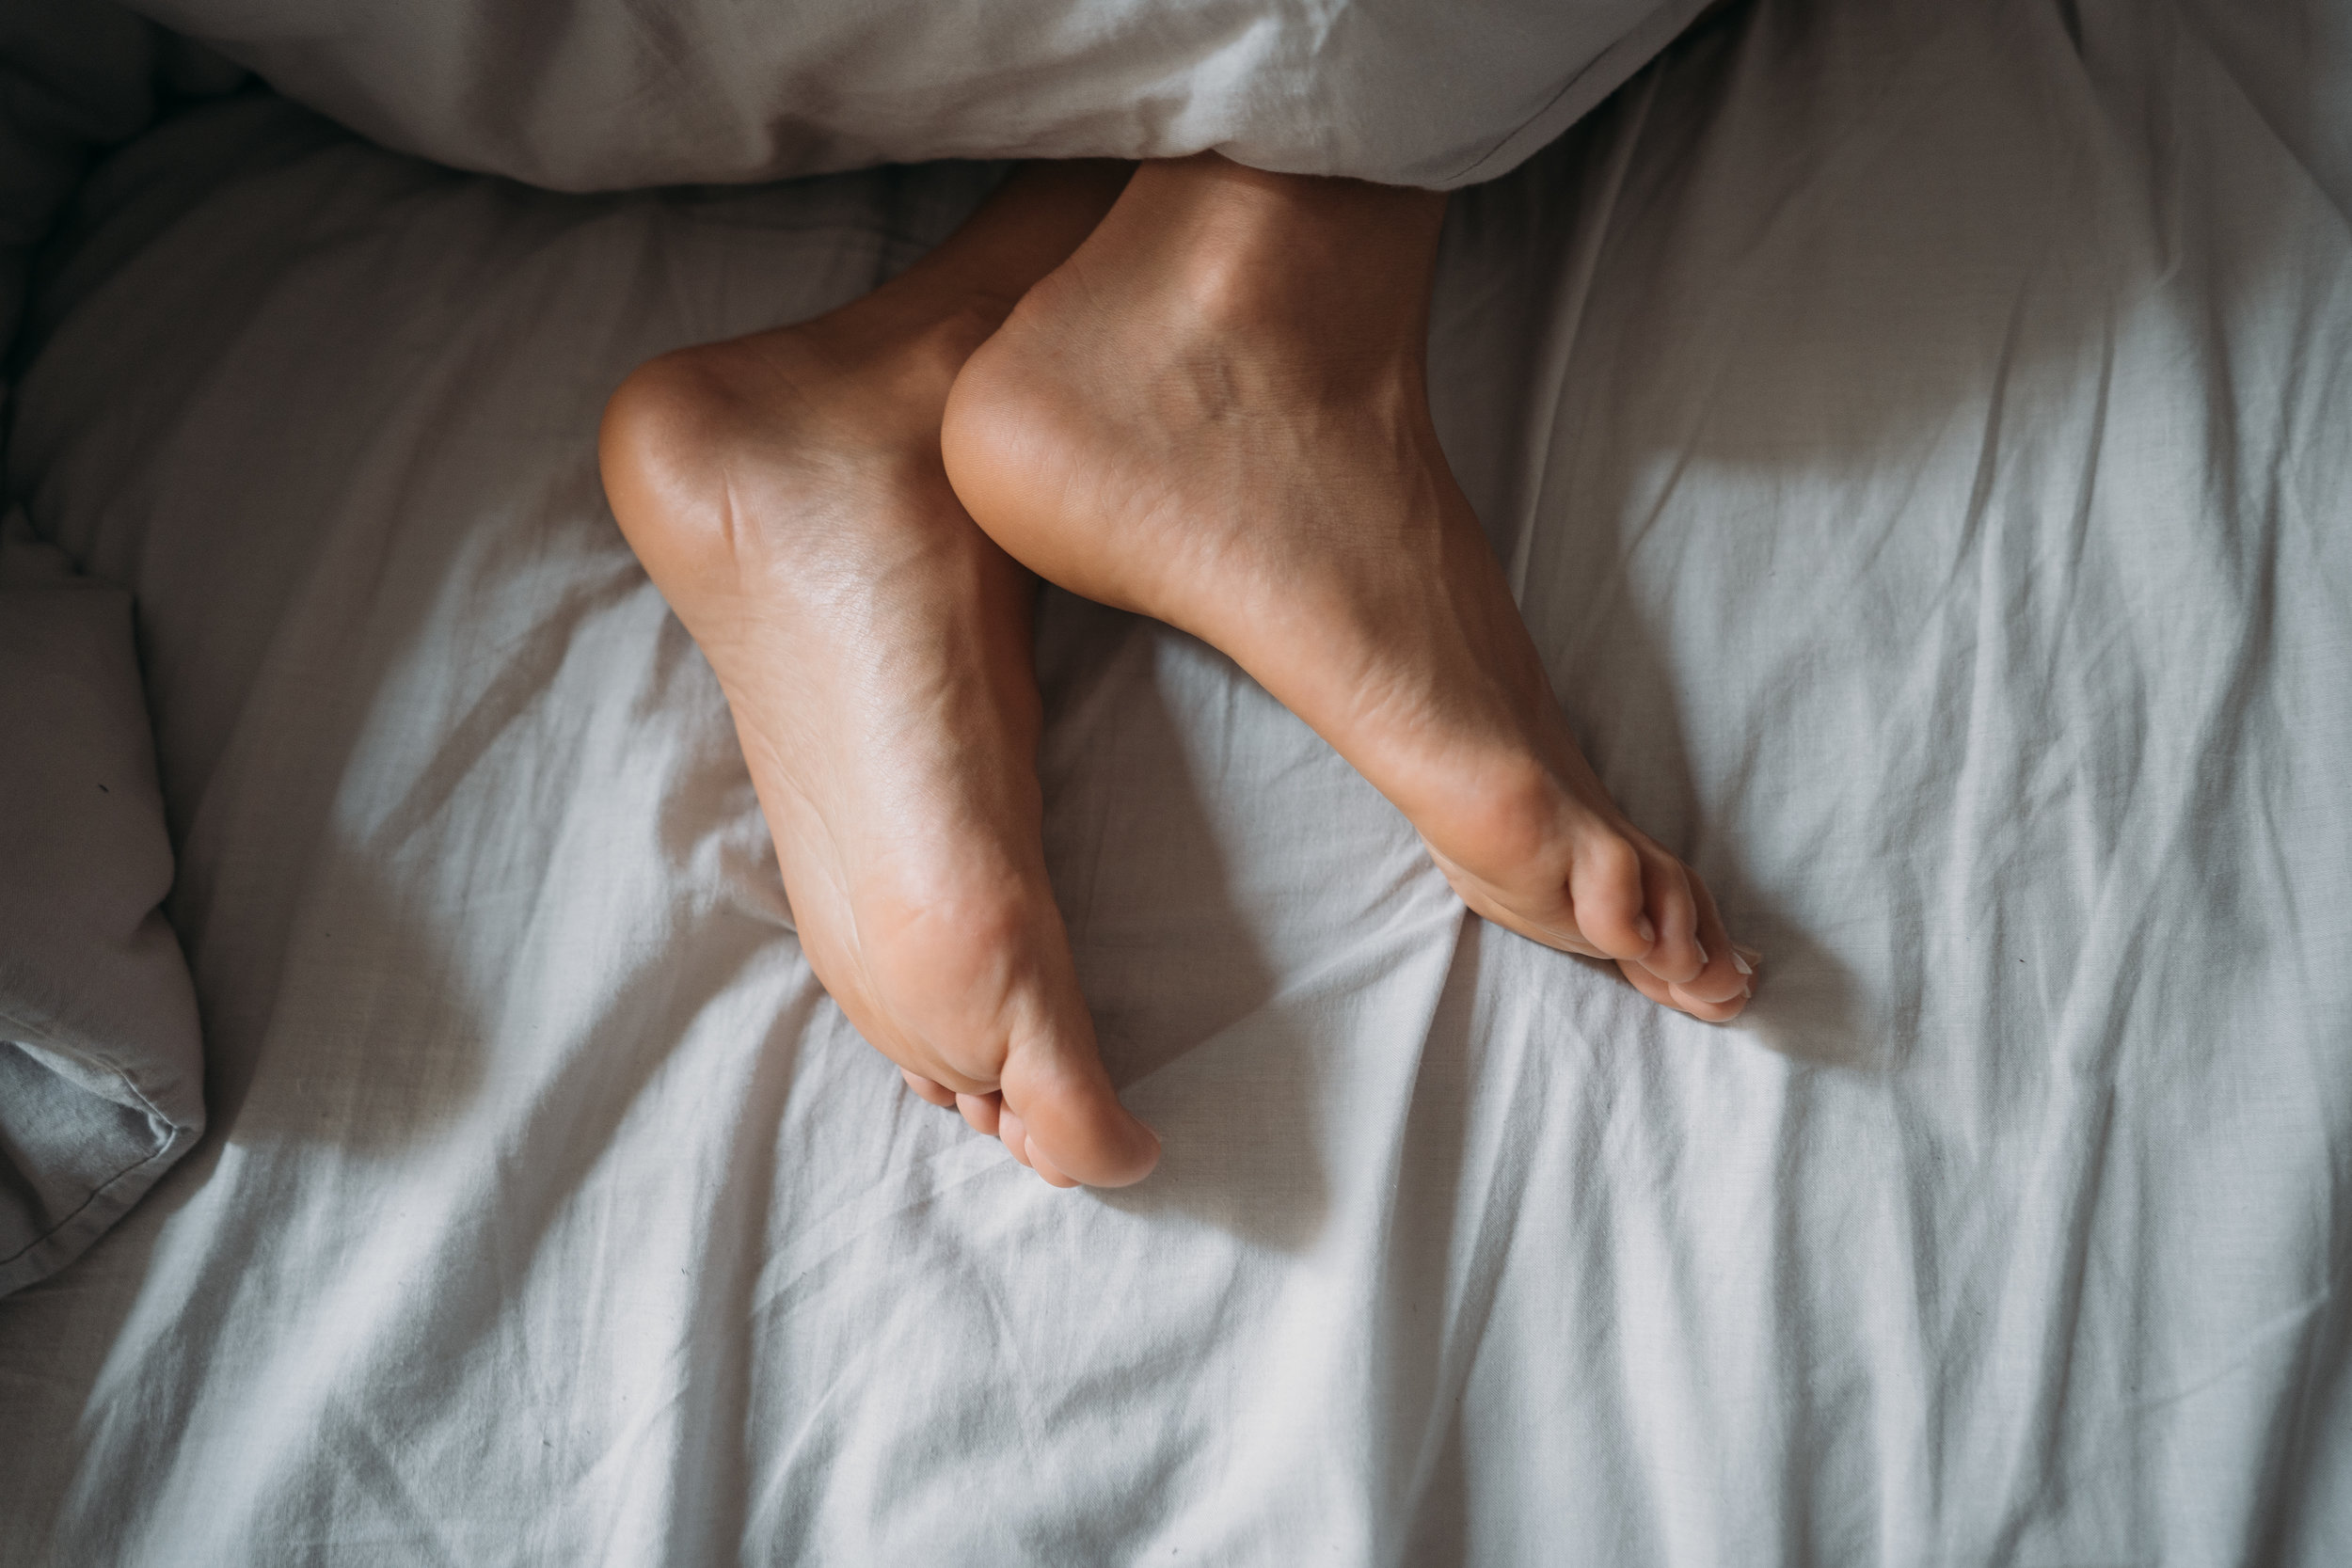 close-up-woman-feet-alone-in-white-bed-W24N7CE.jpg